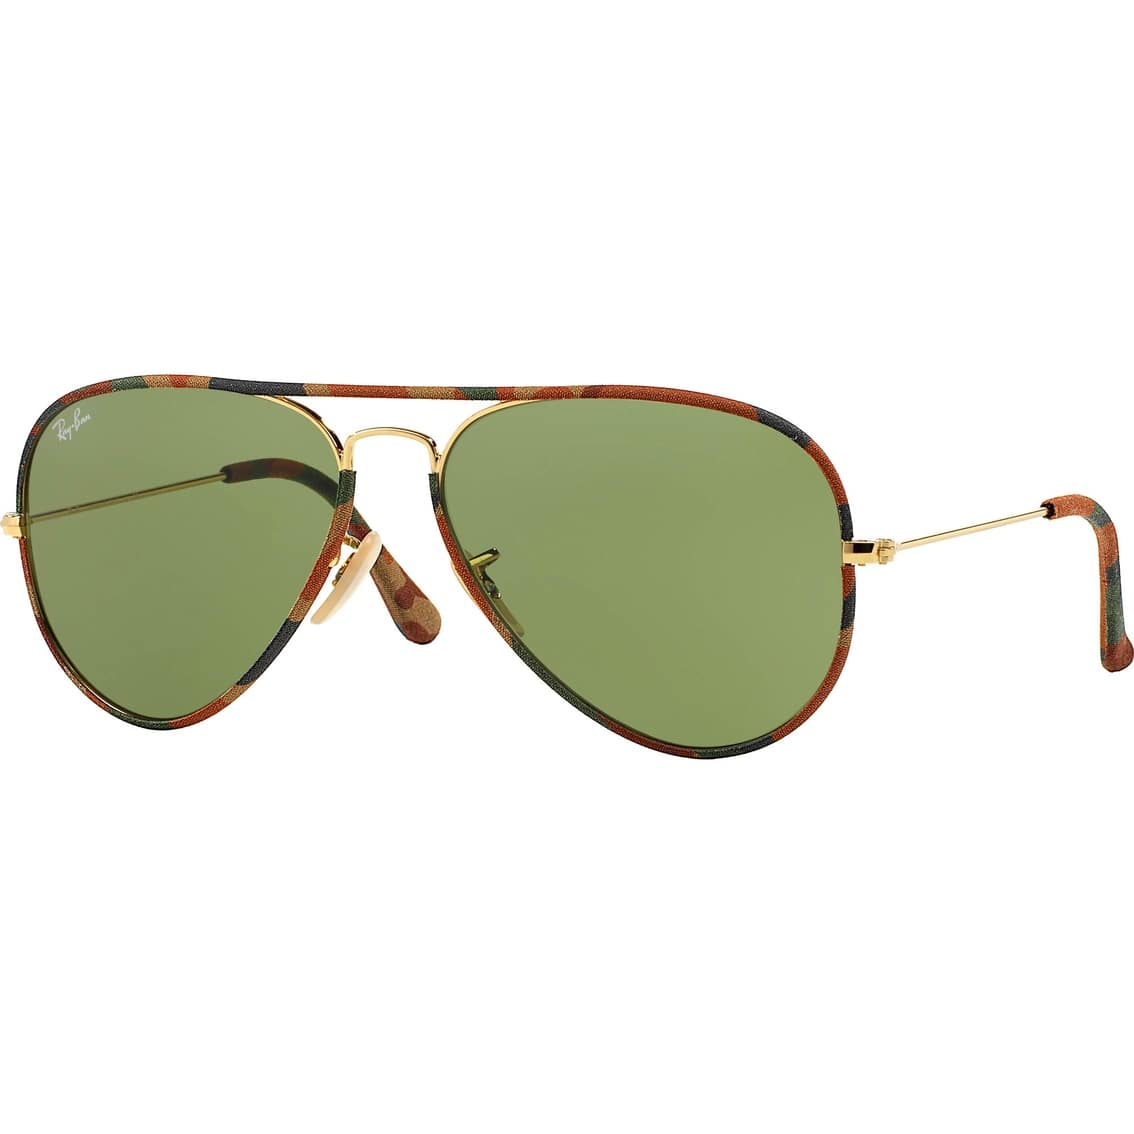 Ray-Ban Aviator Sunglasses AAFES Military/Beneficiary $49.99